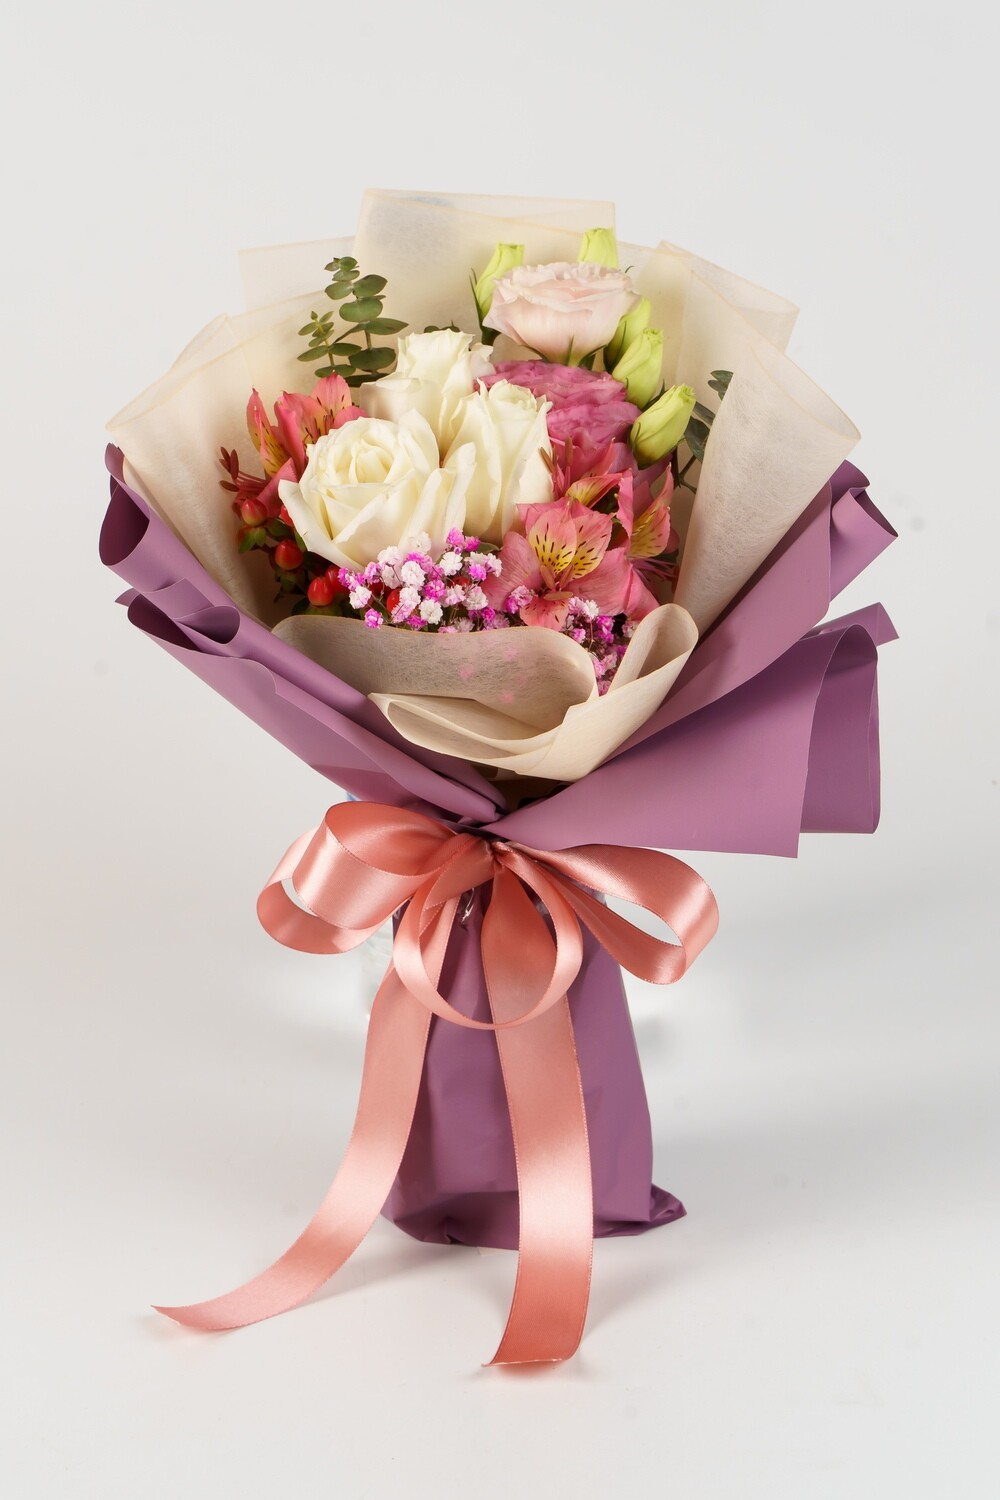 BQ1137 Happy Melody (By: JS Florist from Damansara)